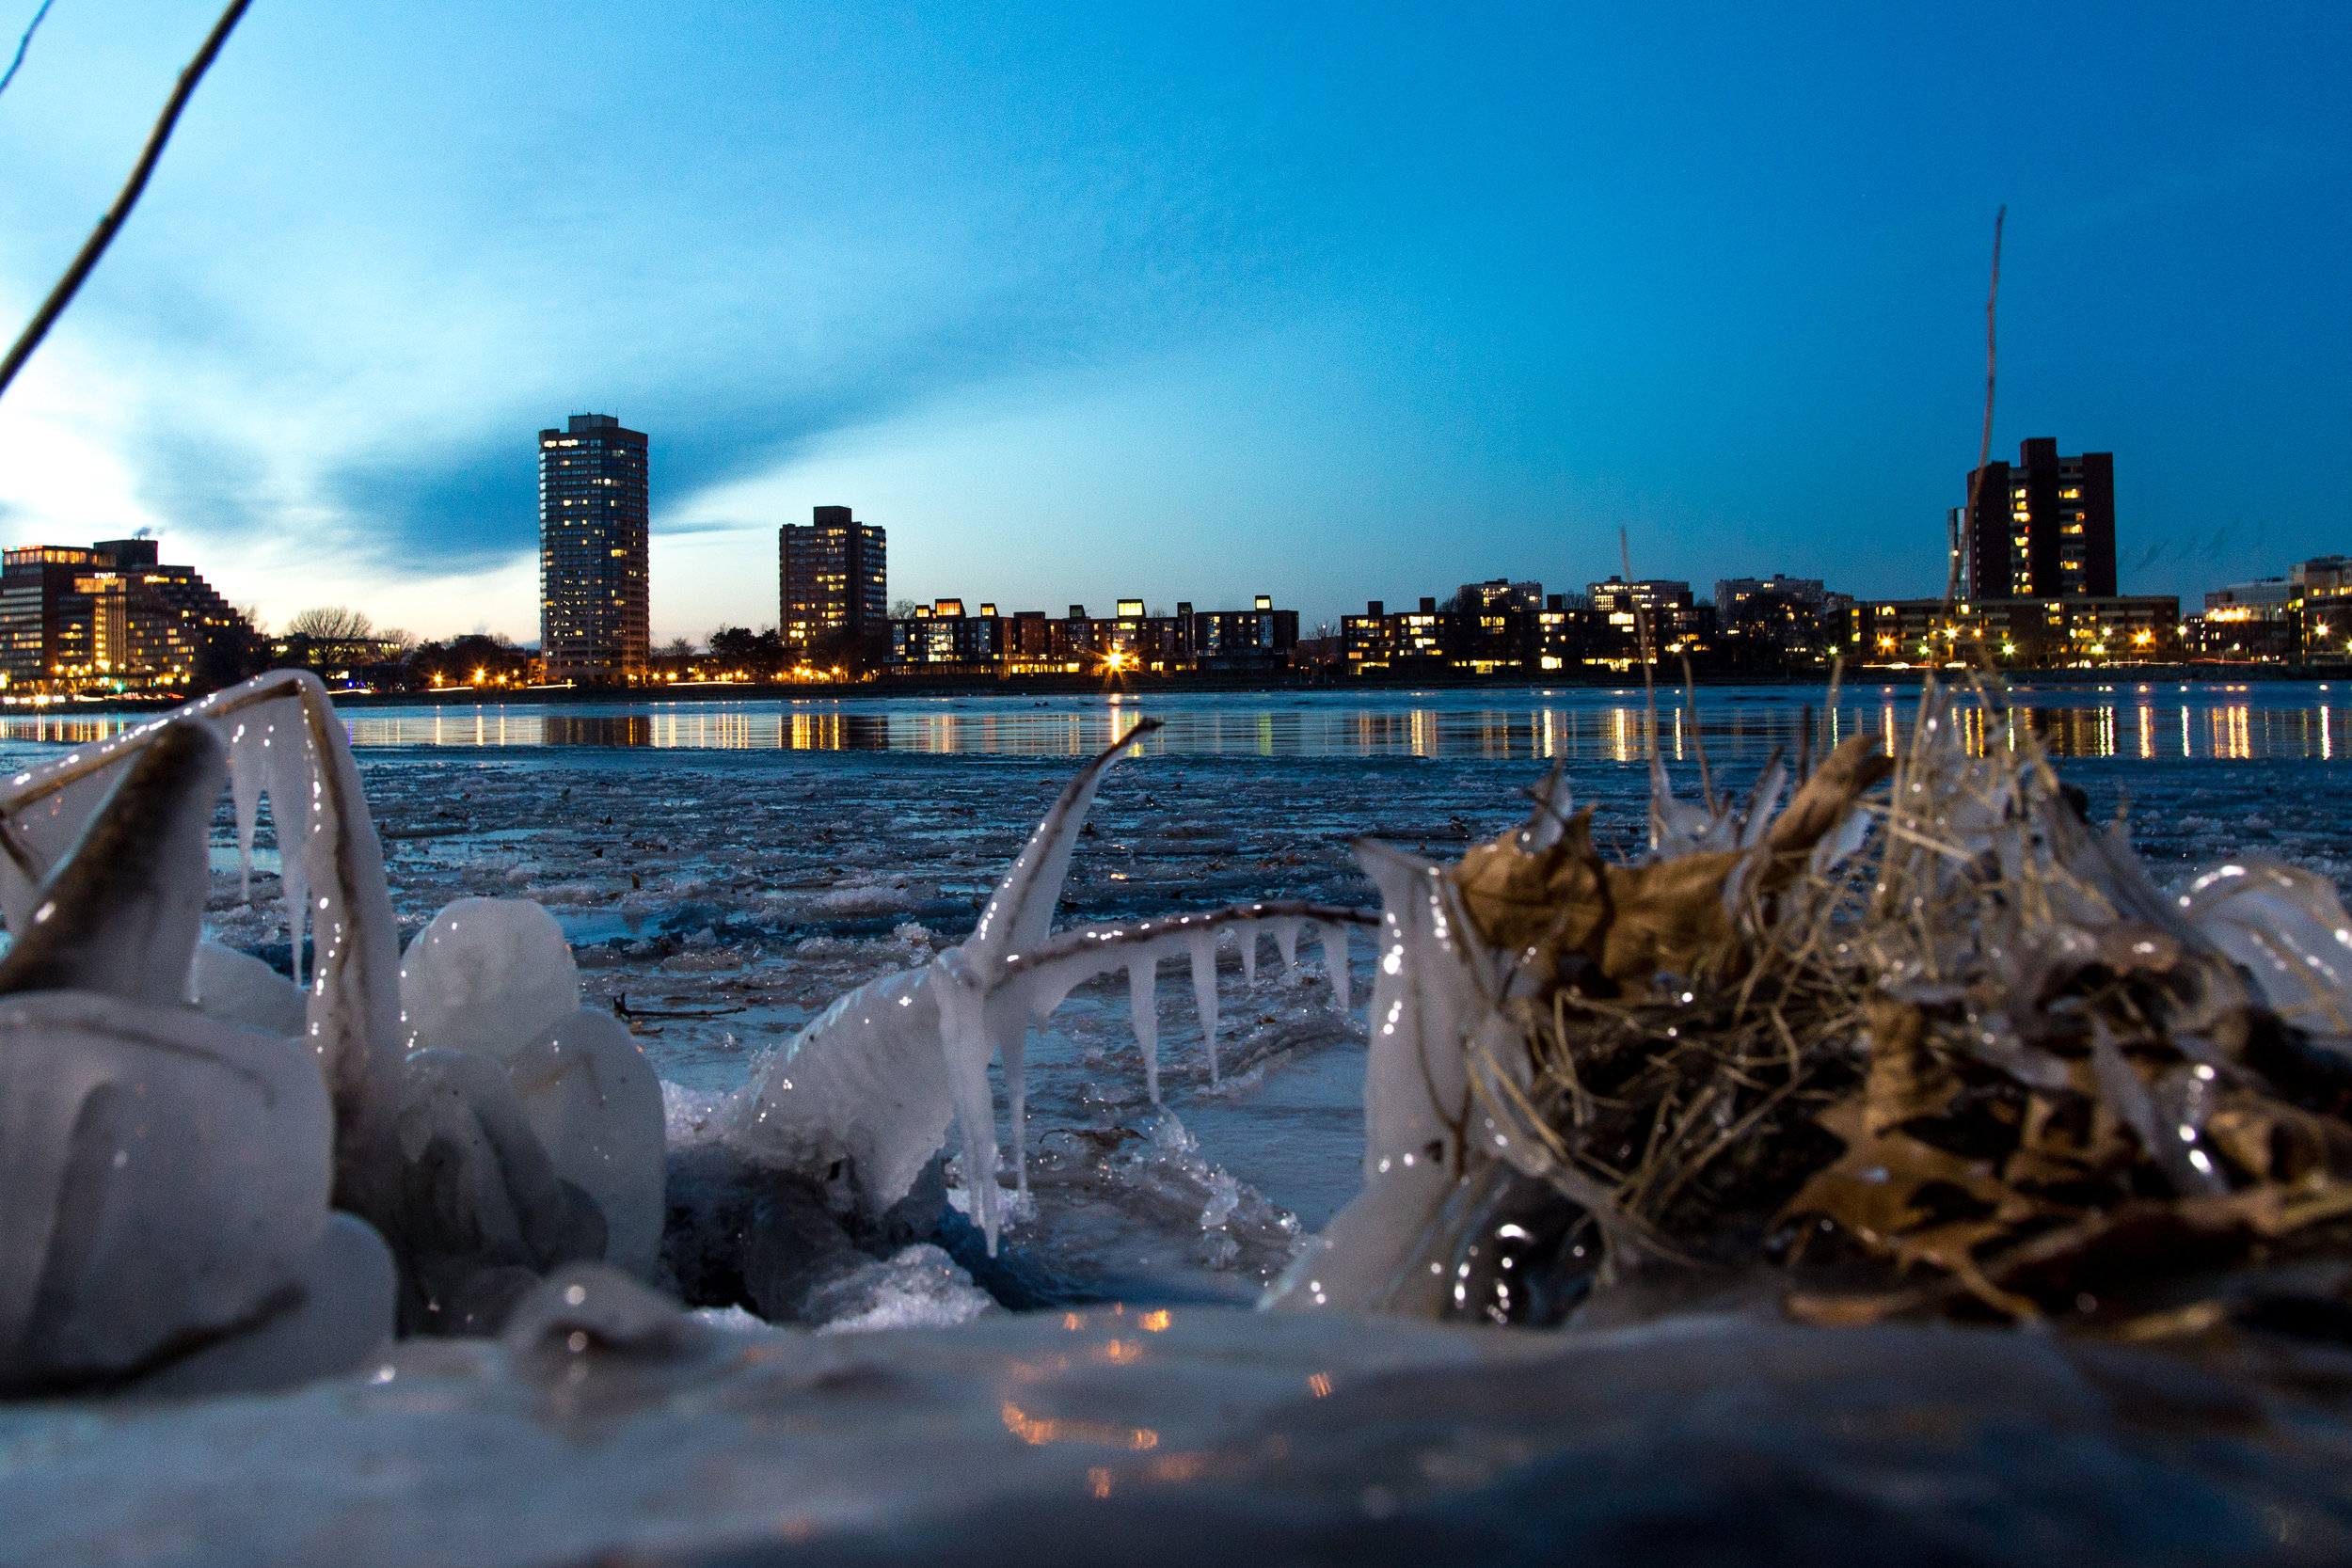 Ice coats plants next to the Charles River in Boston on Dec. 16, 2016.